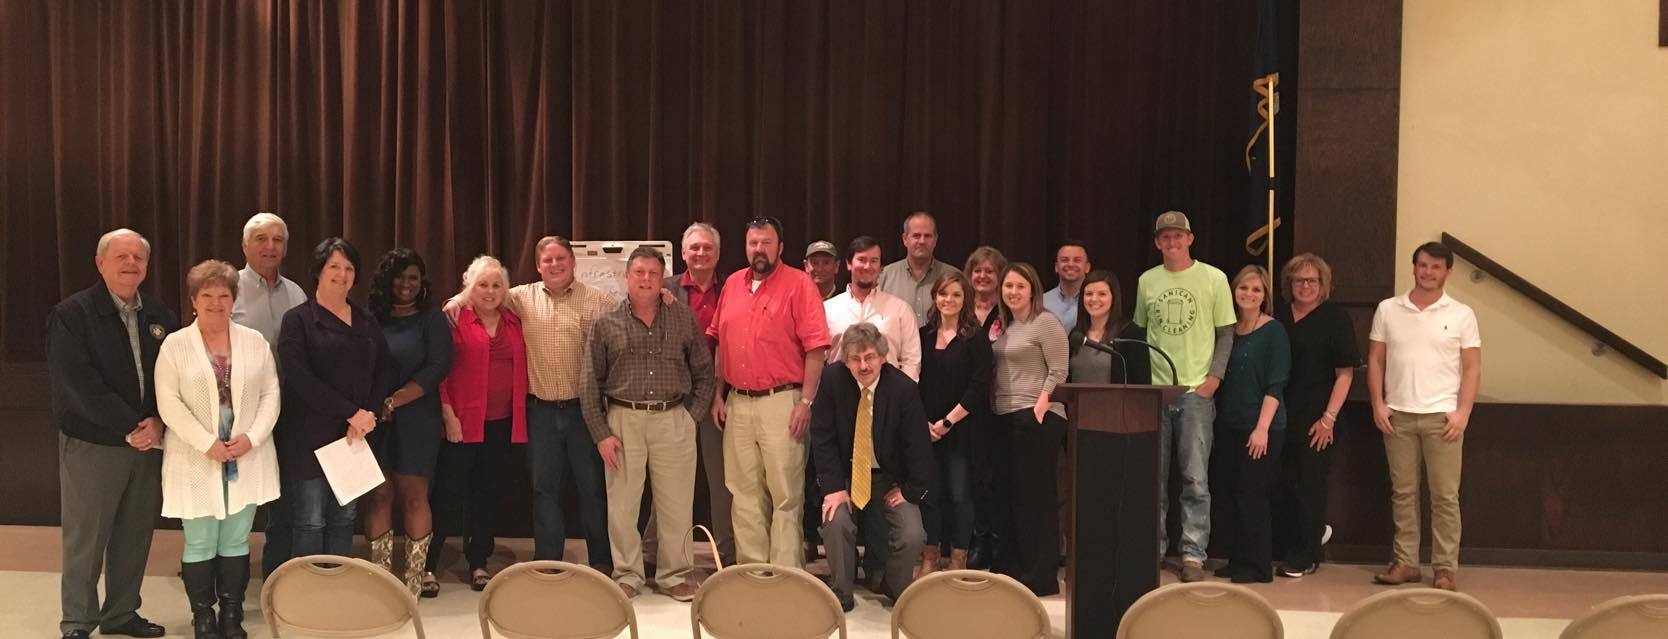 Chamber meets with Rayville citizens and leaders to discuss planning and progress.